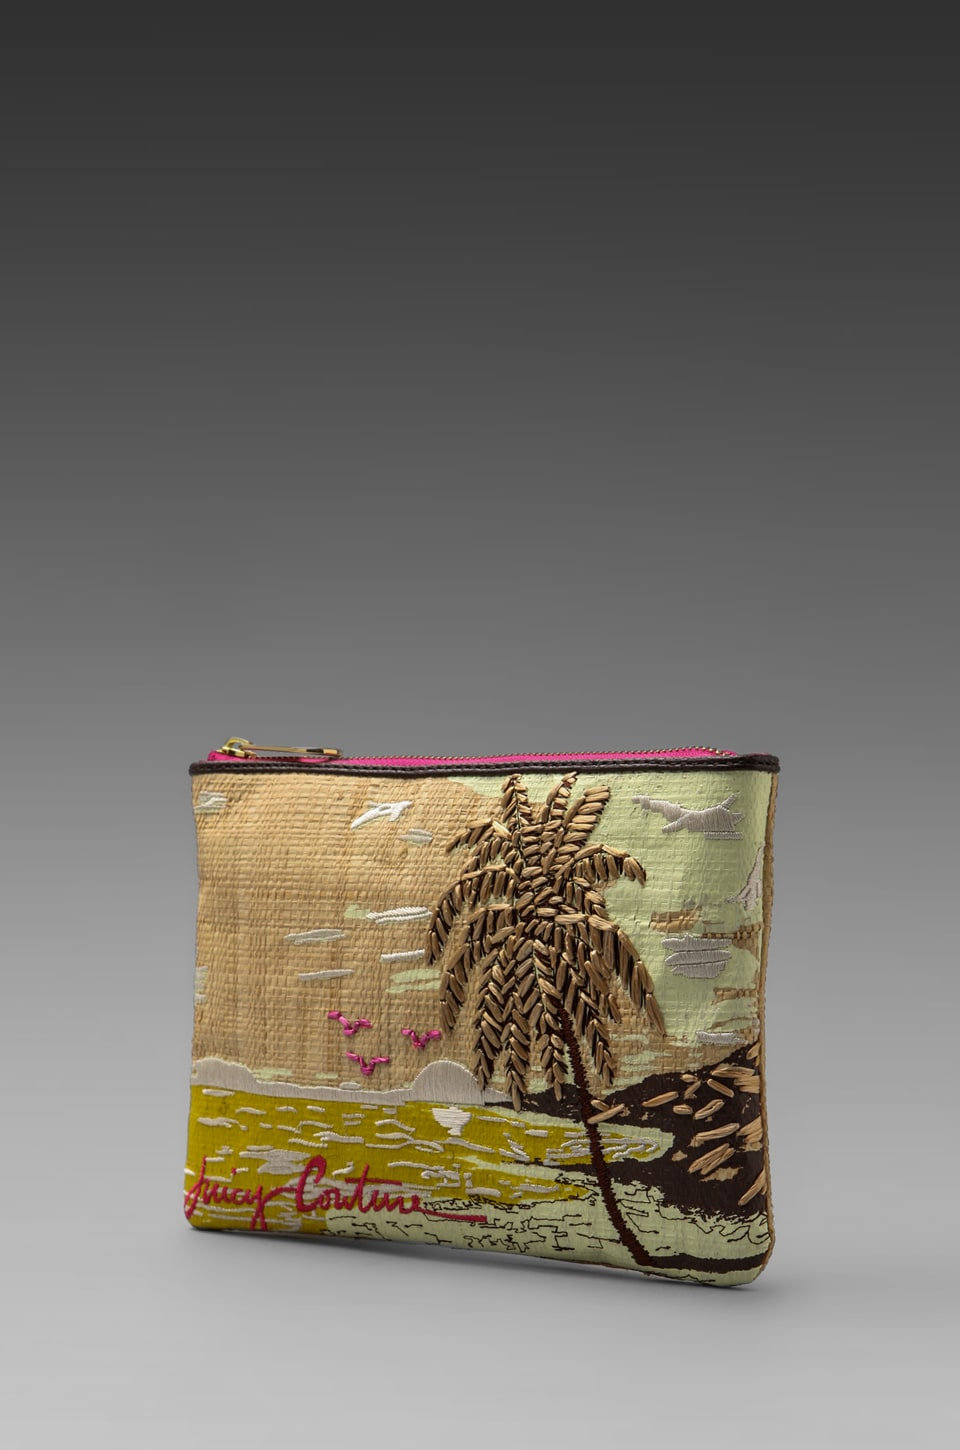 Juicy Couture Raffia Palm Tree Pouch in Natural